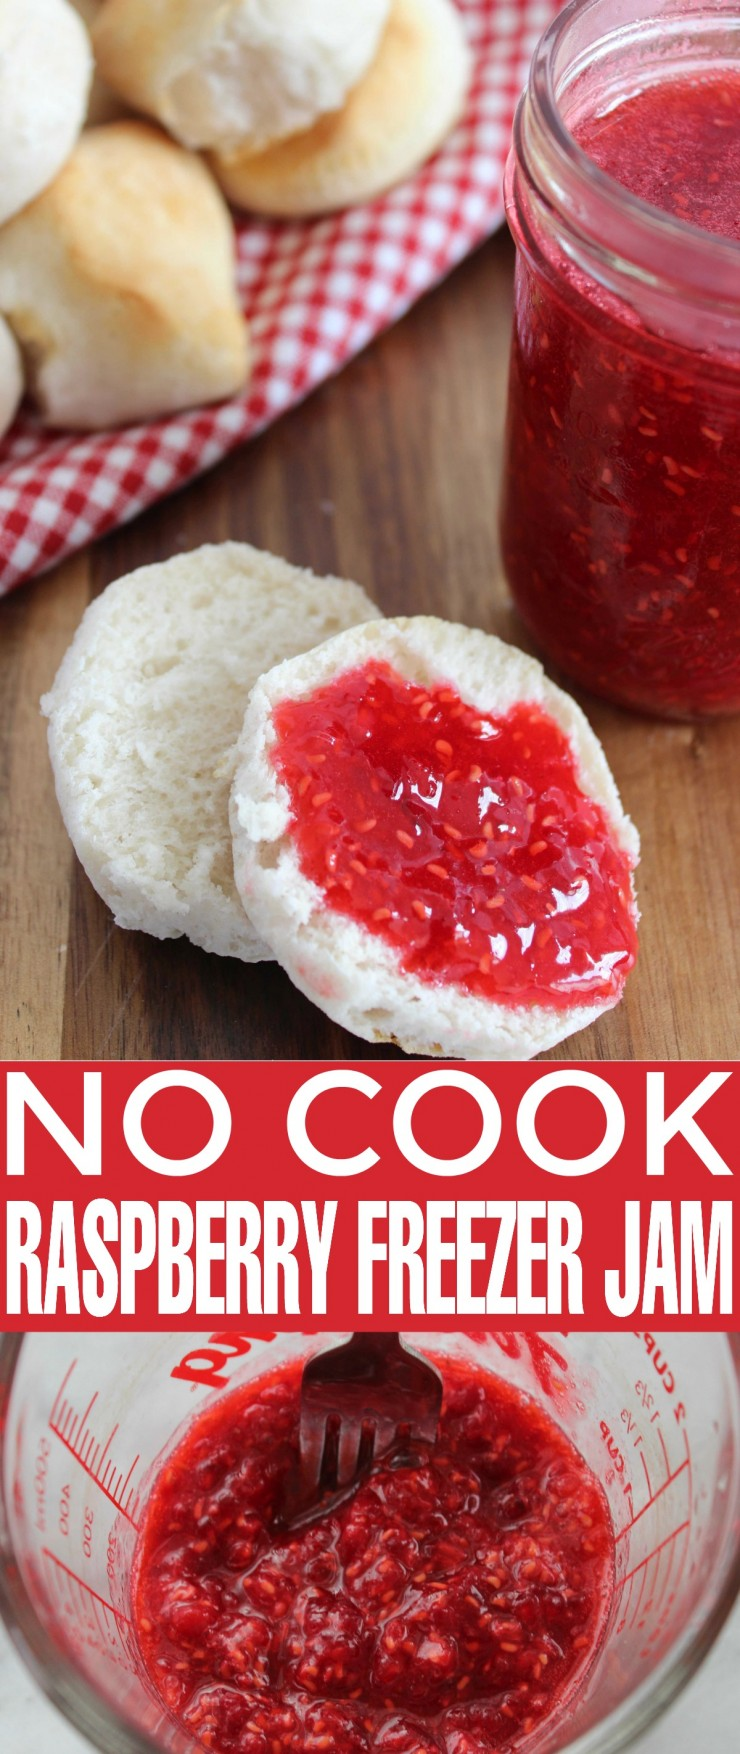 This No Cook Raspberry Freezer Jam is the perfect way to presrve those amazing summer berries.